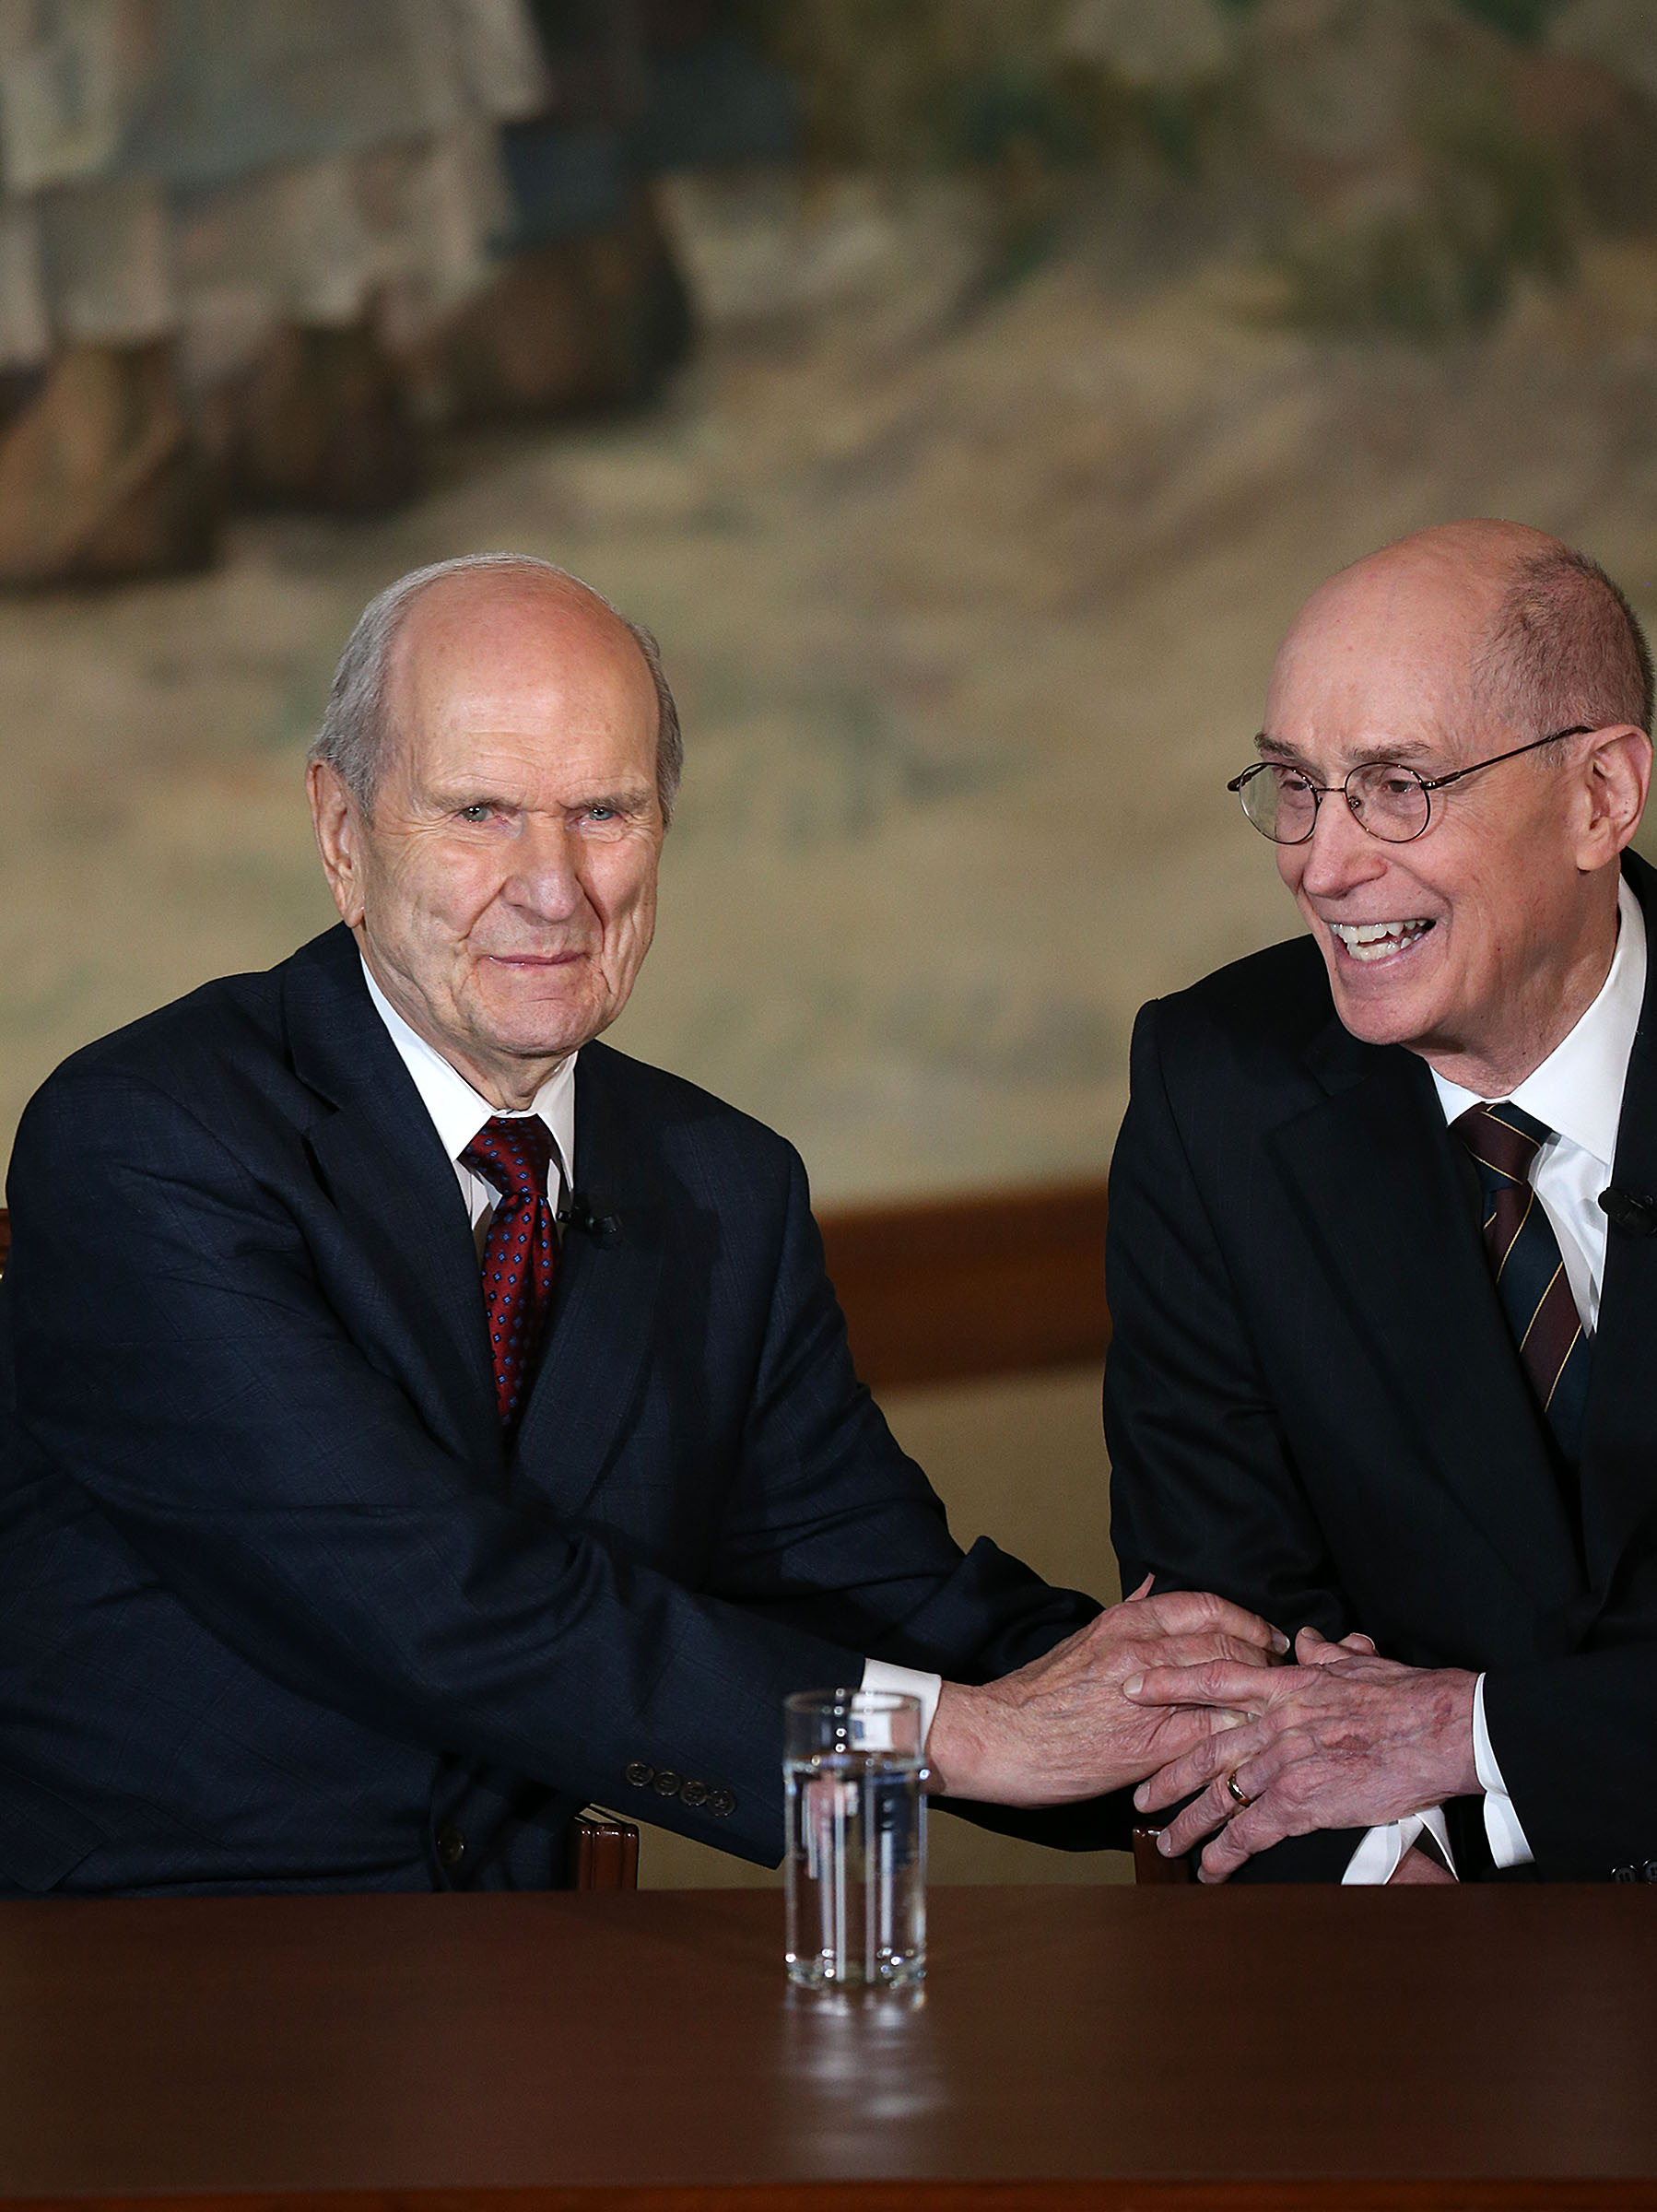 President Henry B. Eyring, second counselor in the First Presidency, at a press conference in Salt Lake City, Utah, on Tuesday, Jan. 16, 2018.